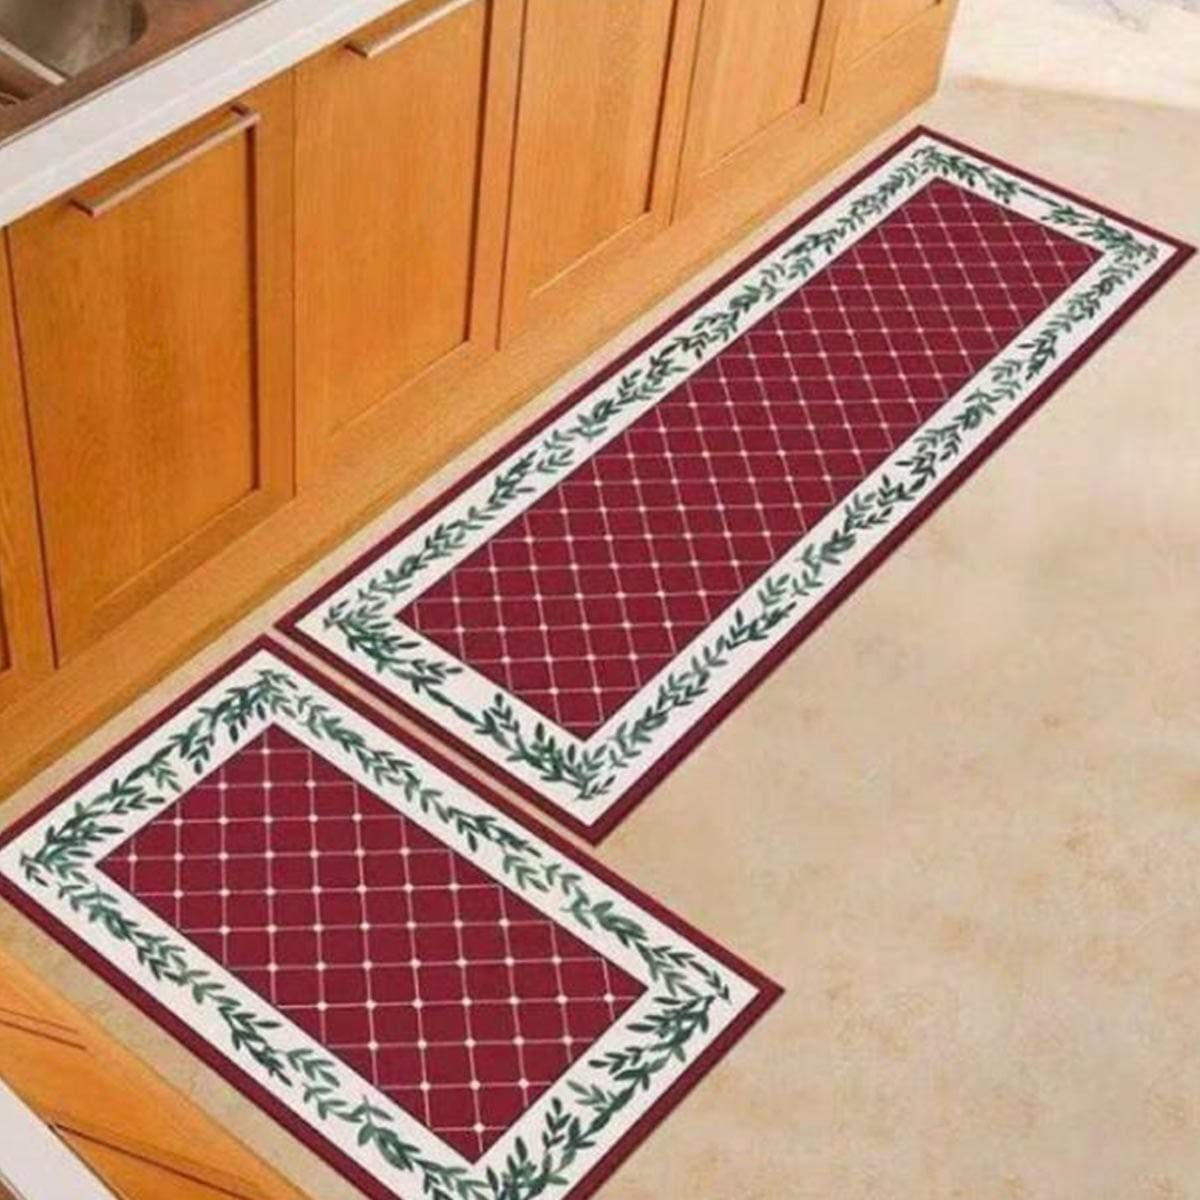 Aneka 40x60cm + 40x120cm Carpet Set - D